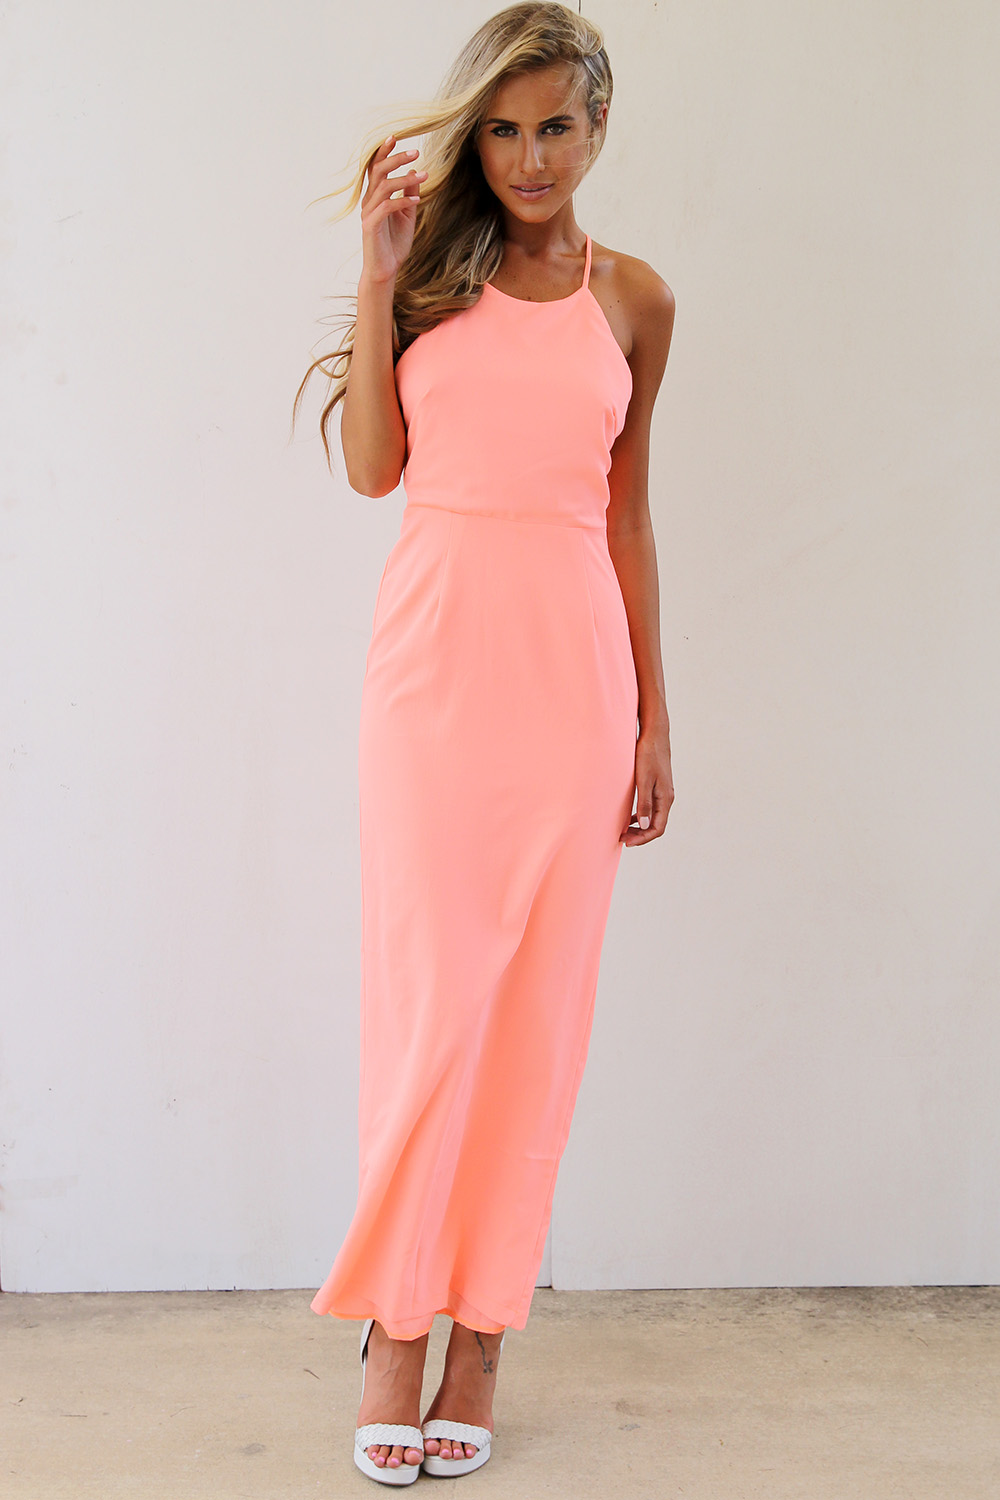 Longer Lengths Dress - Neon Peach Maxi Dress with | UsTrendy